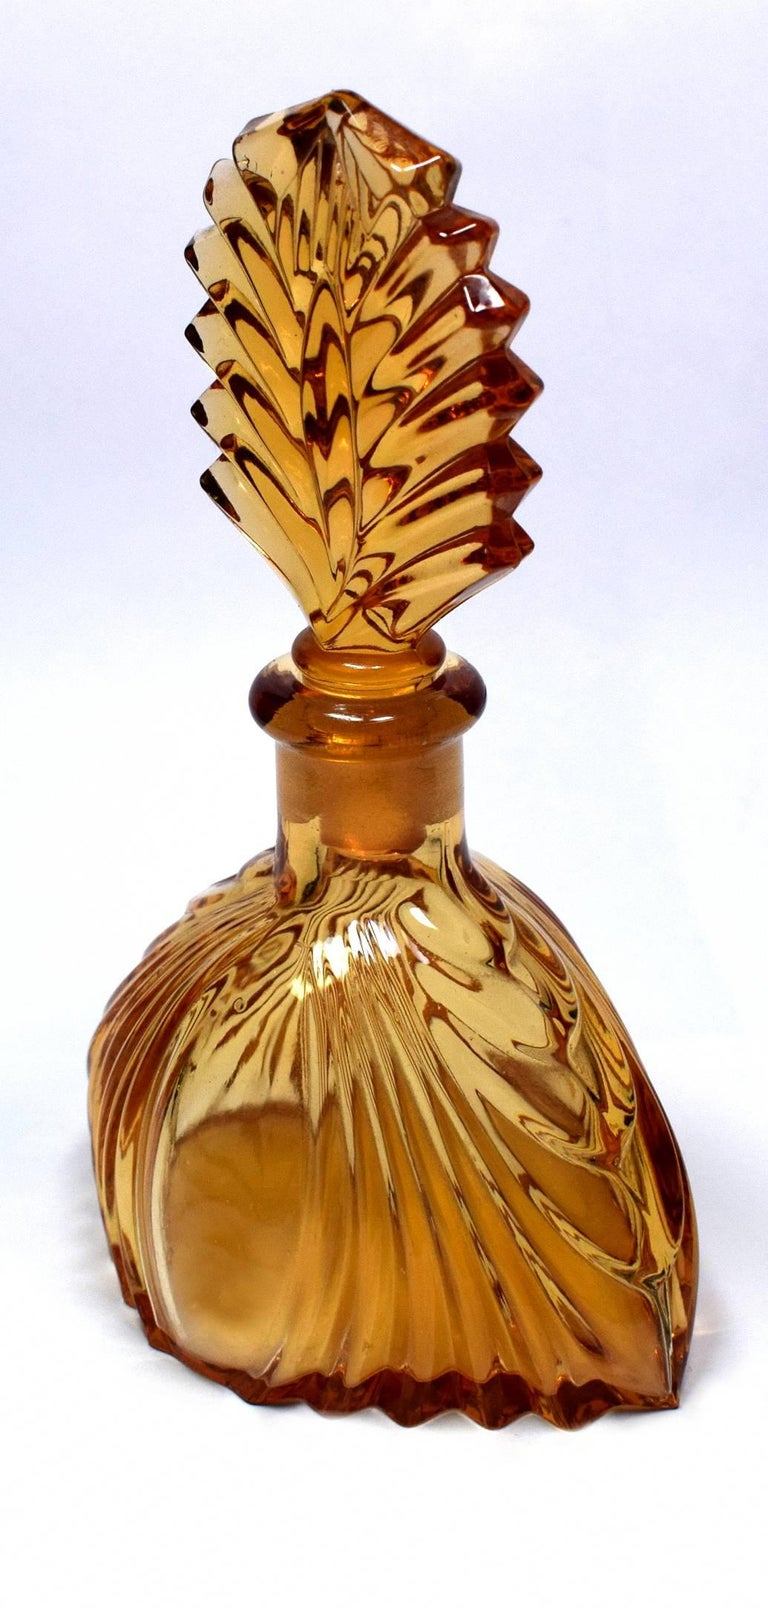 A really beautiful amber and clear colored Art Deco perfume bottle with a wonderful fan shaped glass stopper. In excellent condition with no chips or signs of use at all. A real collectors item for your Art Deco setting.